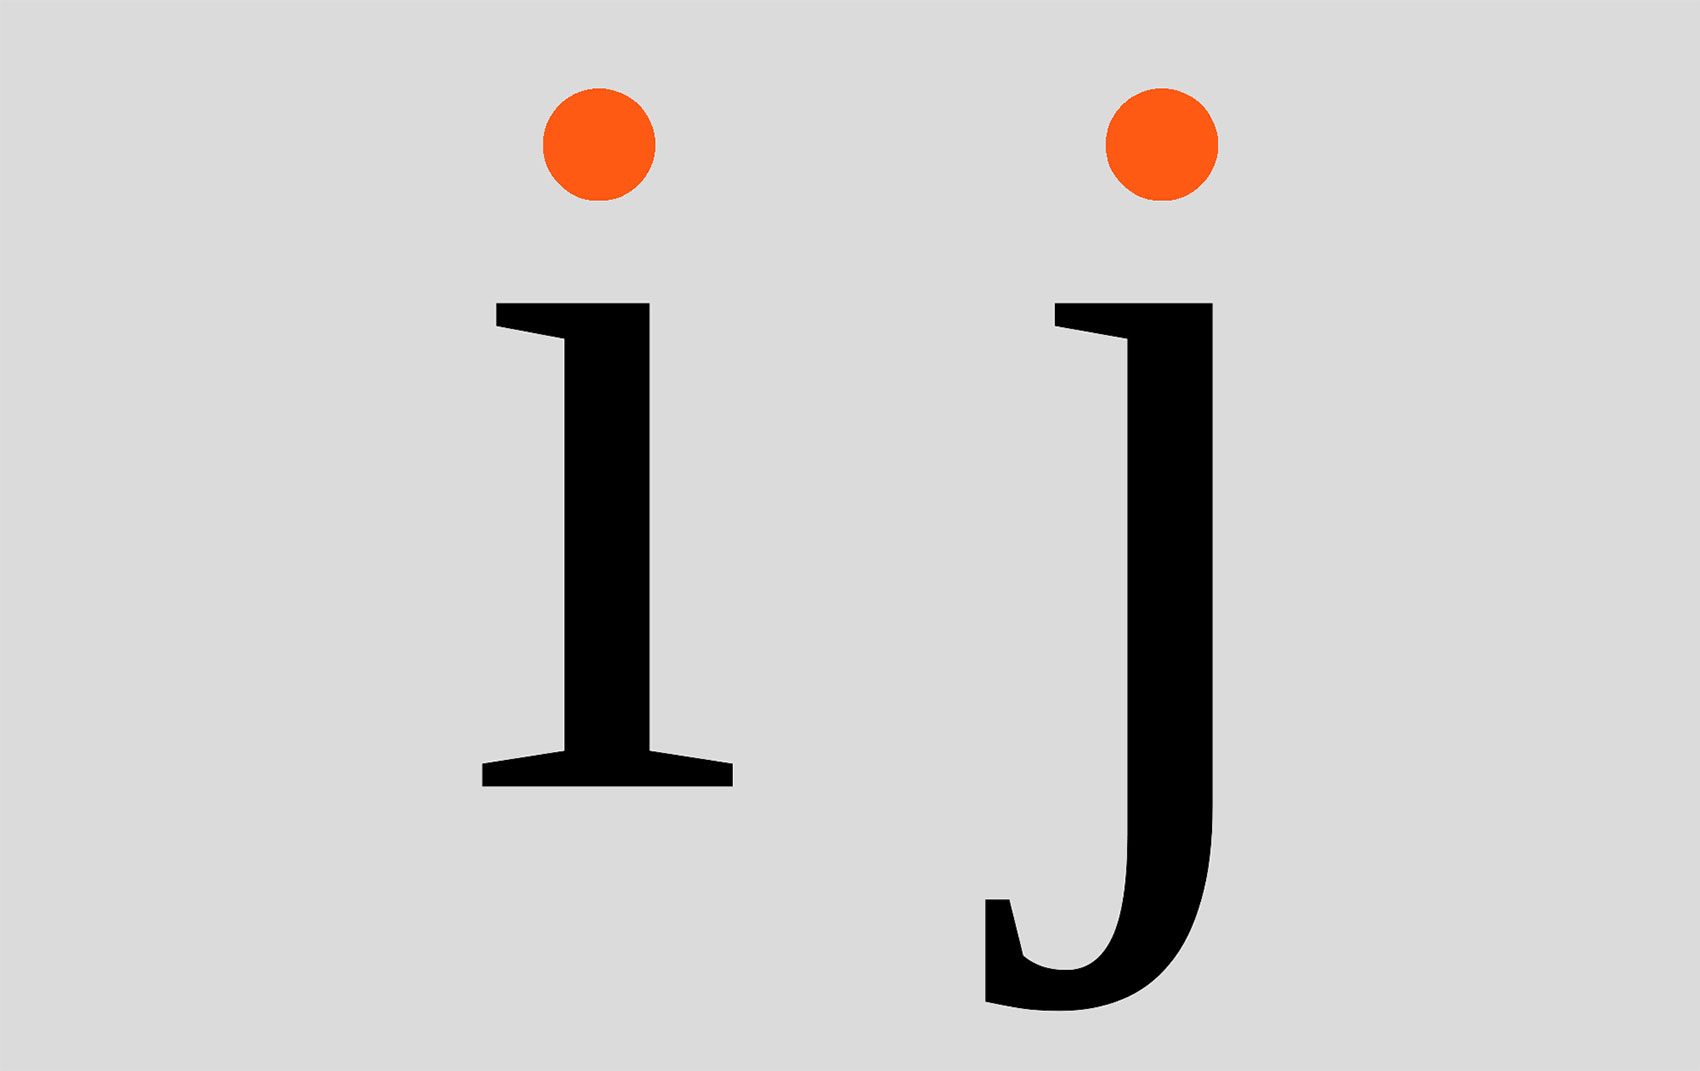 Lower case 'i' and 'j' with dots highlighted